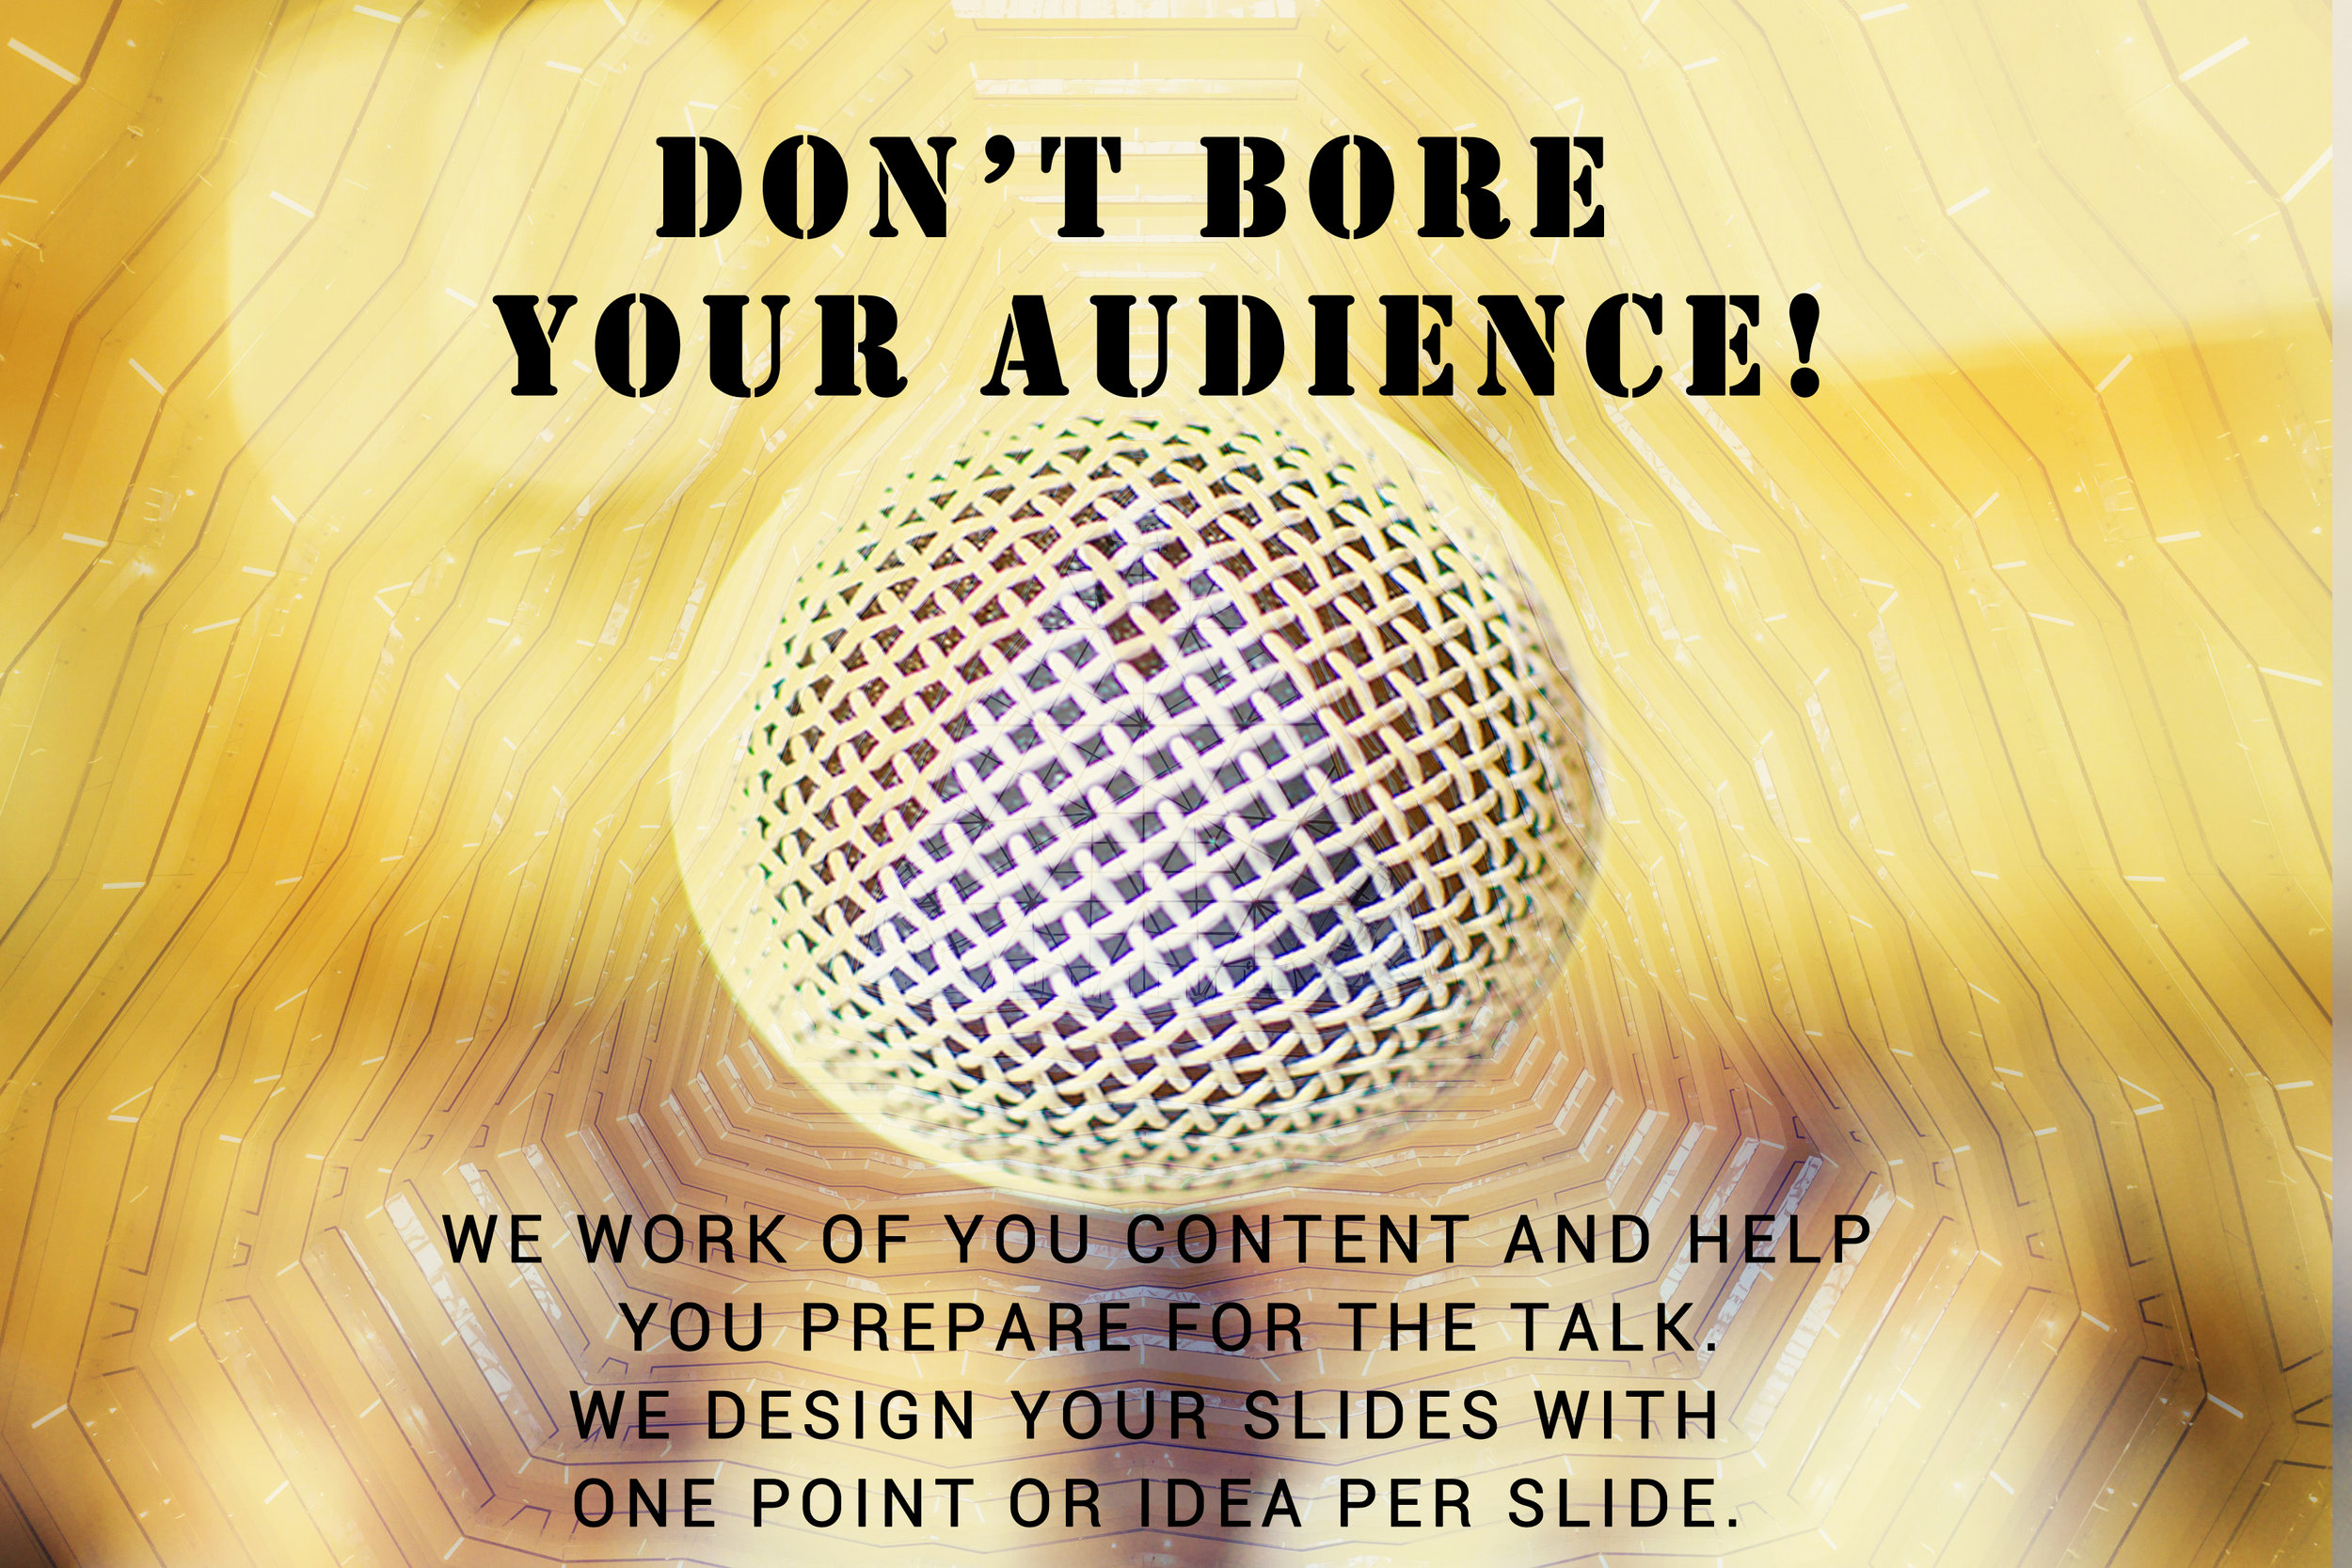 LMD-Don't-Bore-Your-Audience.jpg